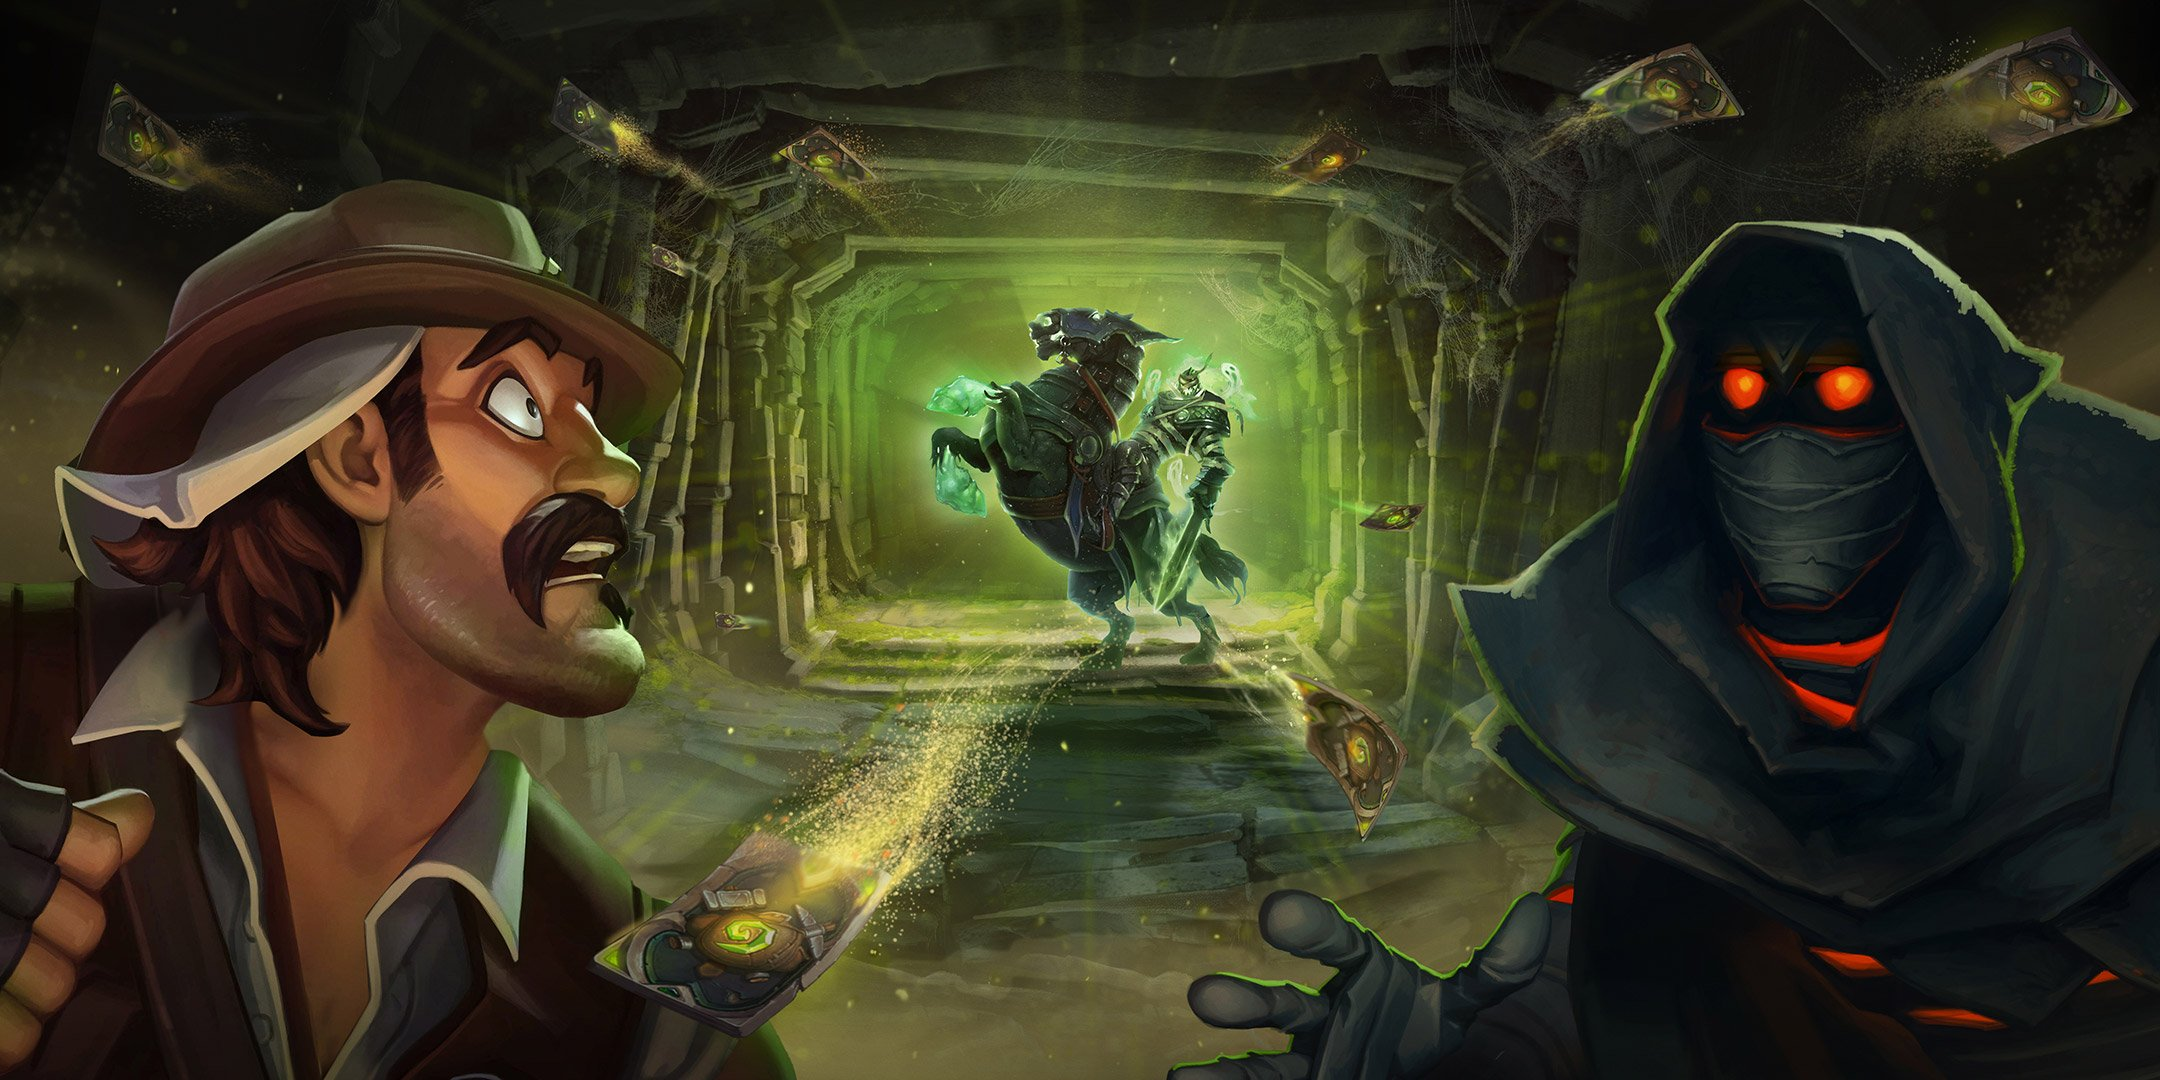 Blizzard halves banned Hearthstone player's suspension, gives back prize money screenshot